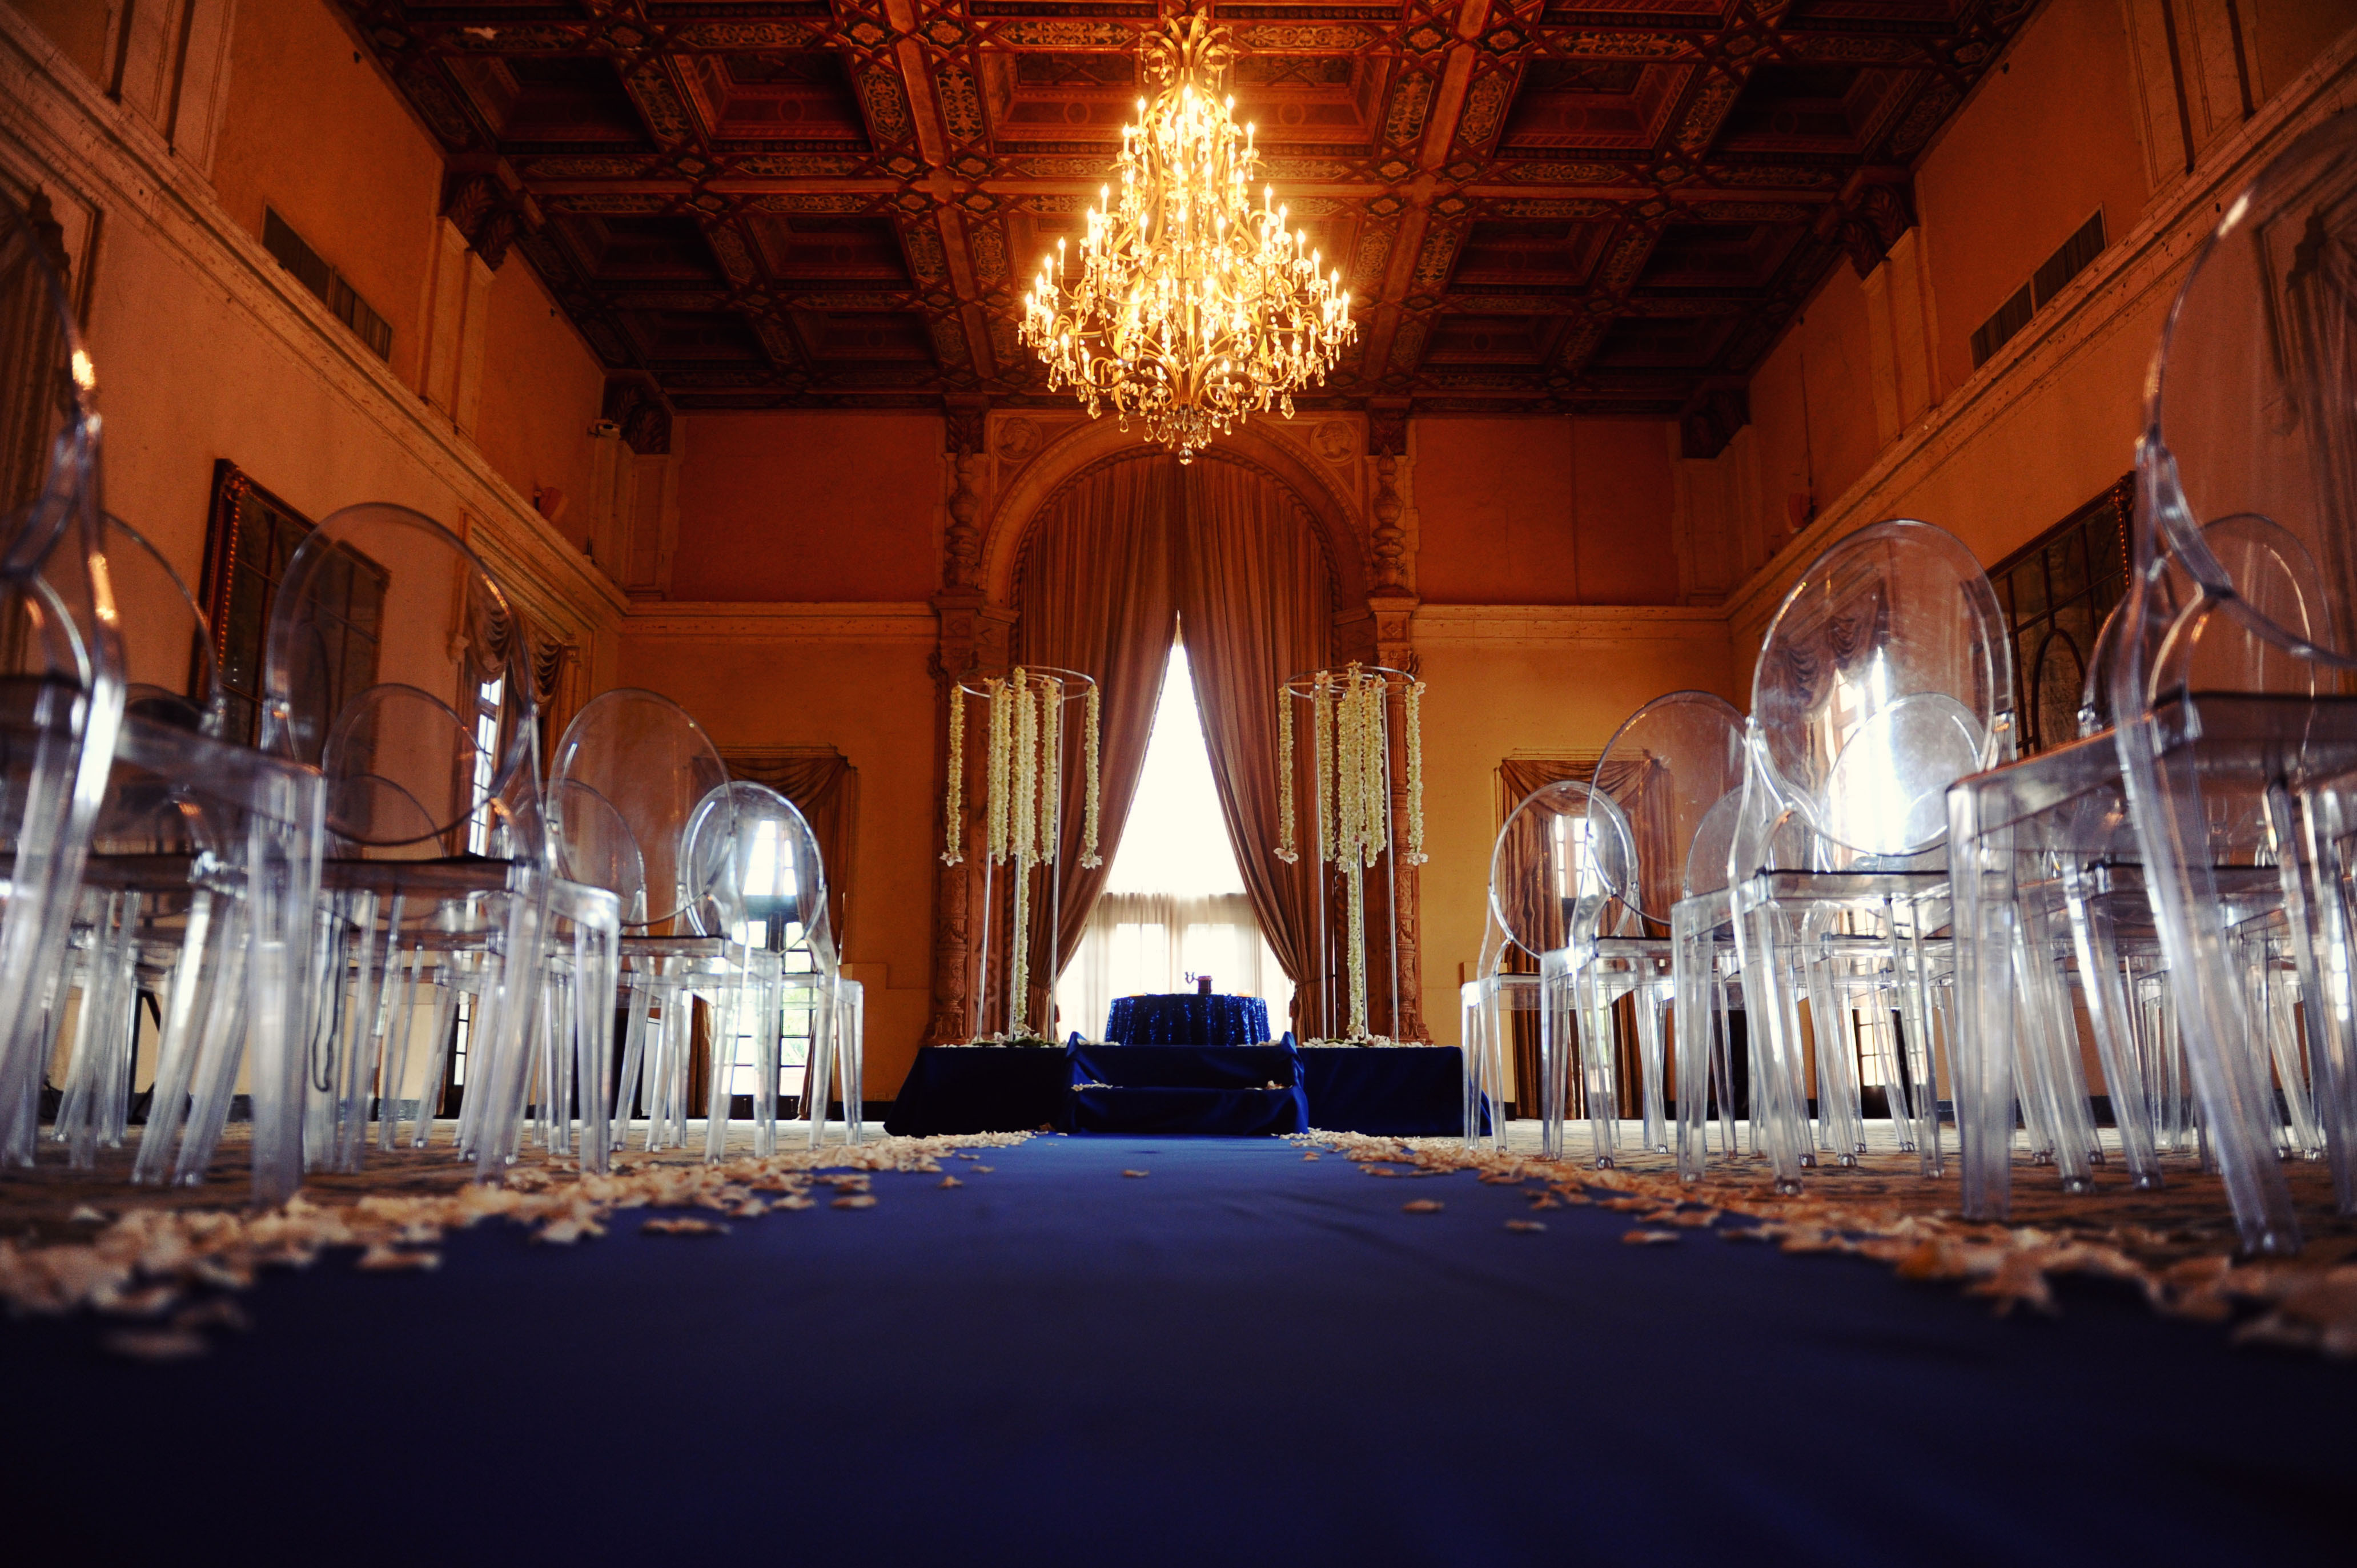 Ceremony, Flowers & Decor, Tables & Seating, Wedding, Chairs, Chandelier, Ballroom, Clear, Persephone eddie, Ghost chairs